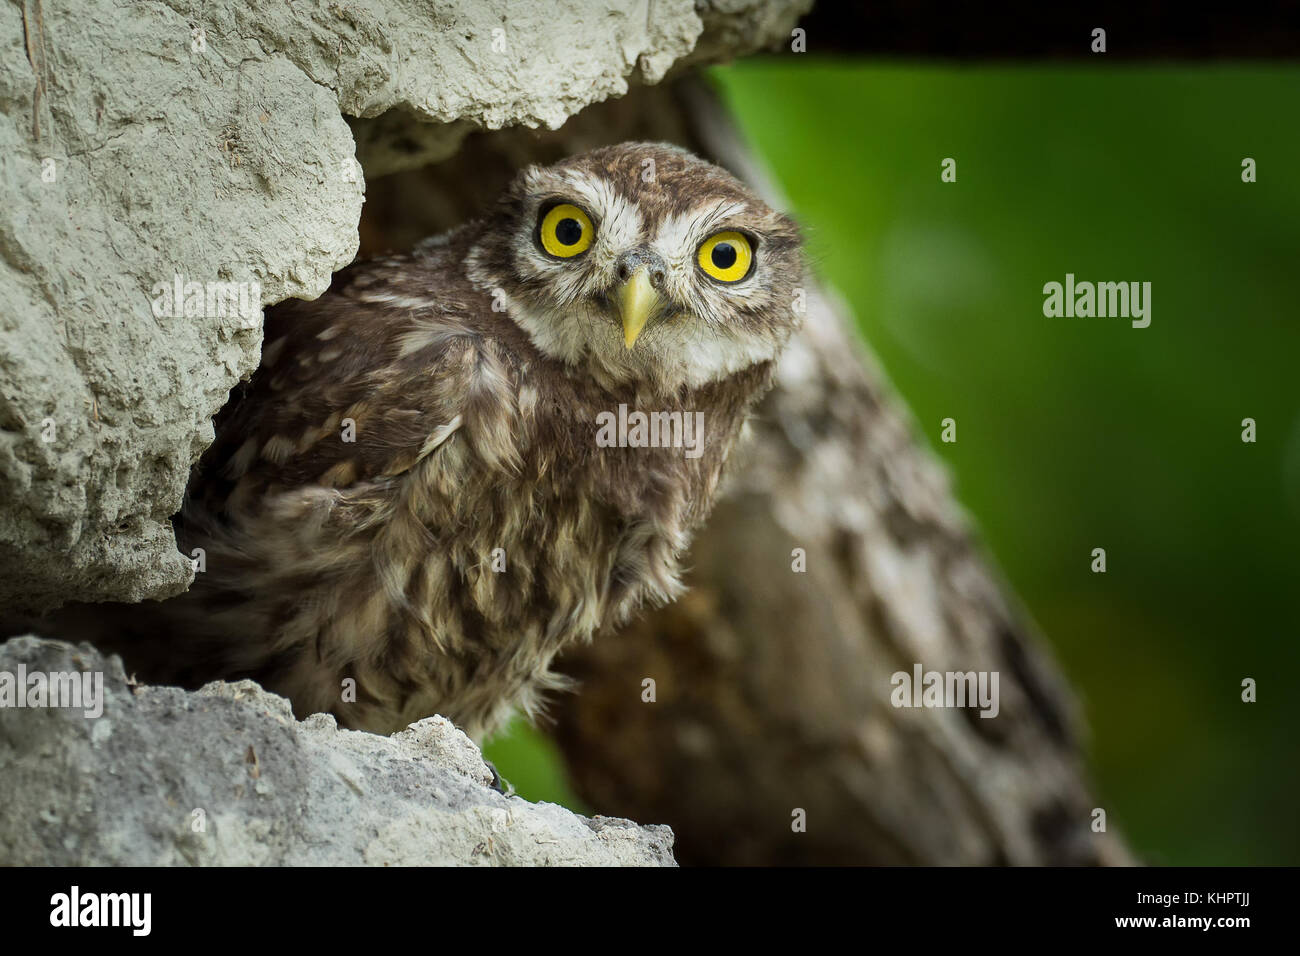 Young Little Owl (Athene noctua) hiding on the old wall. - Stock Image